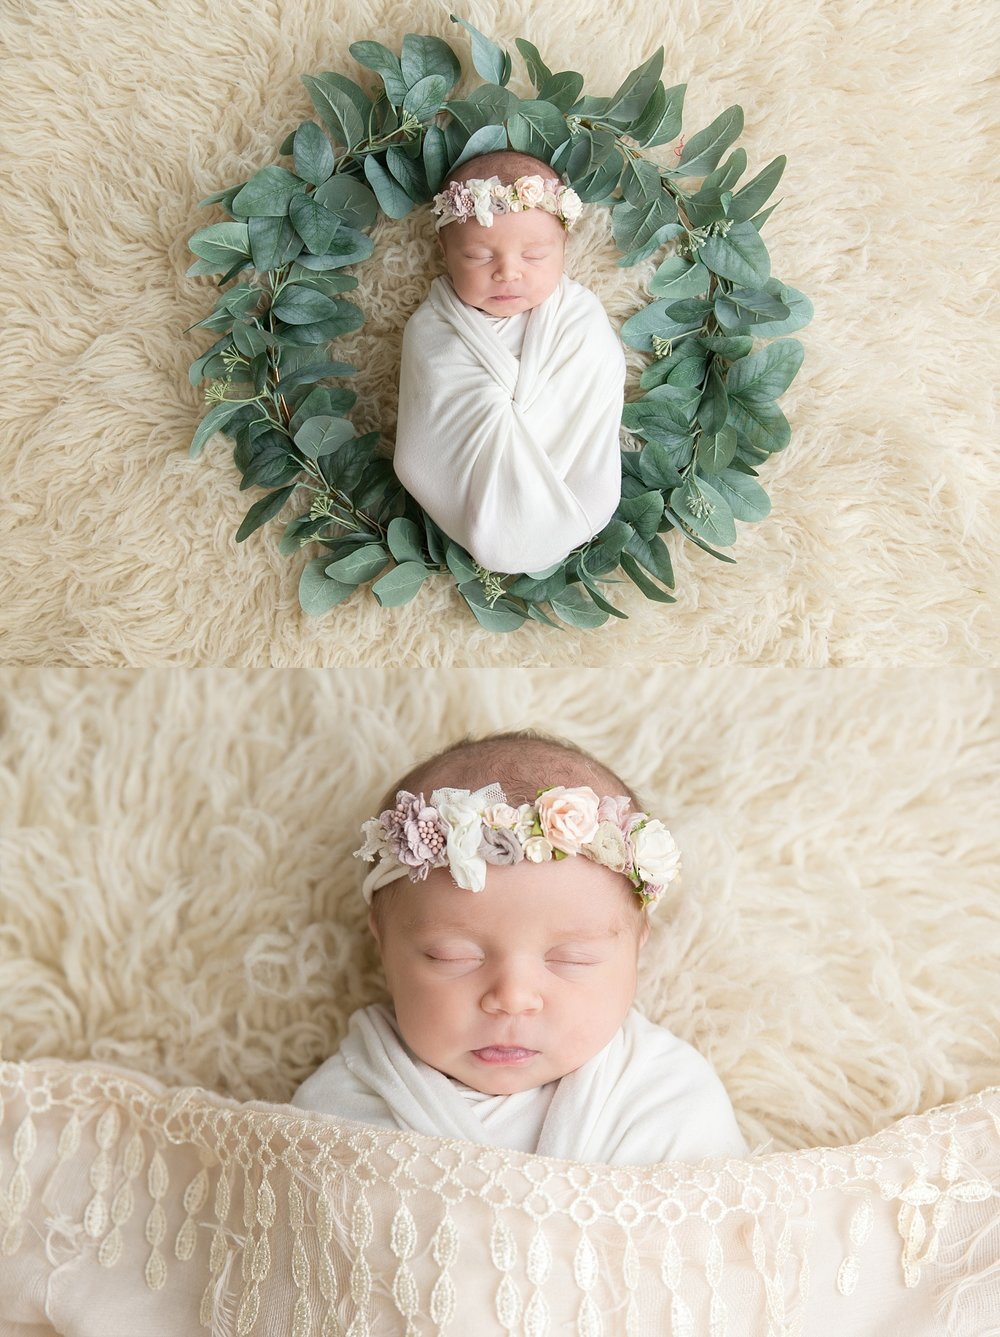 st-louis-newborn-photographer-collage-baby-girl-on-cream-fur-with-green-wreath.jpg